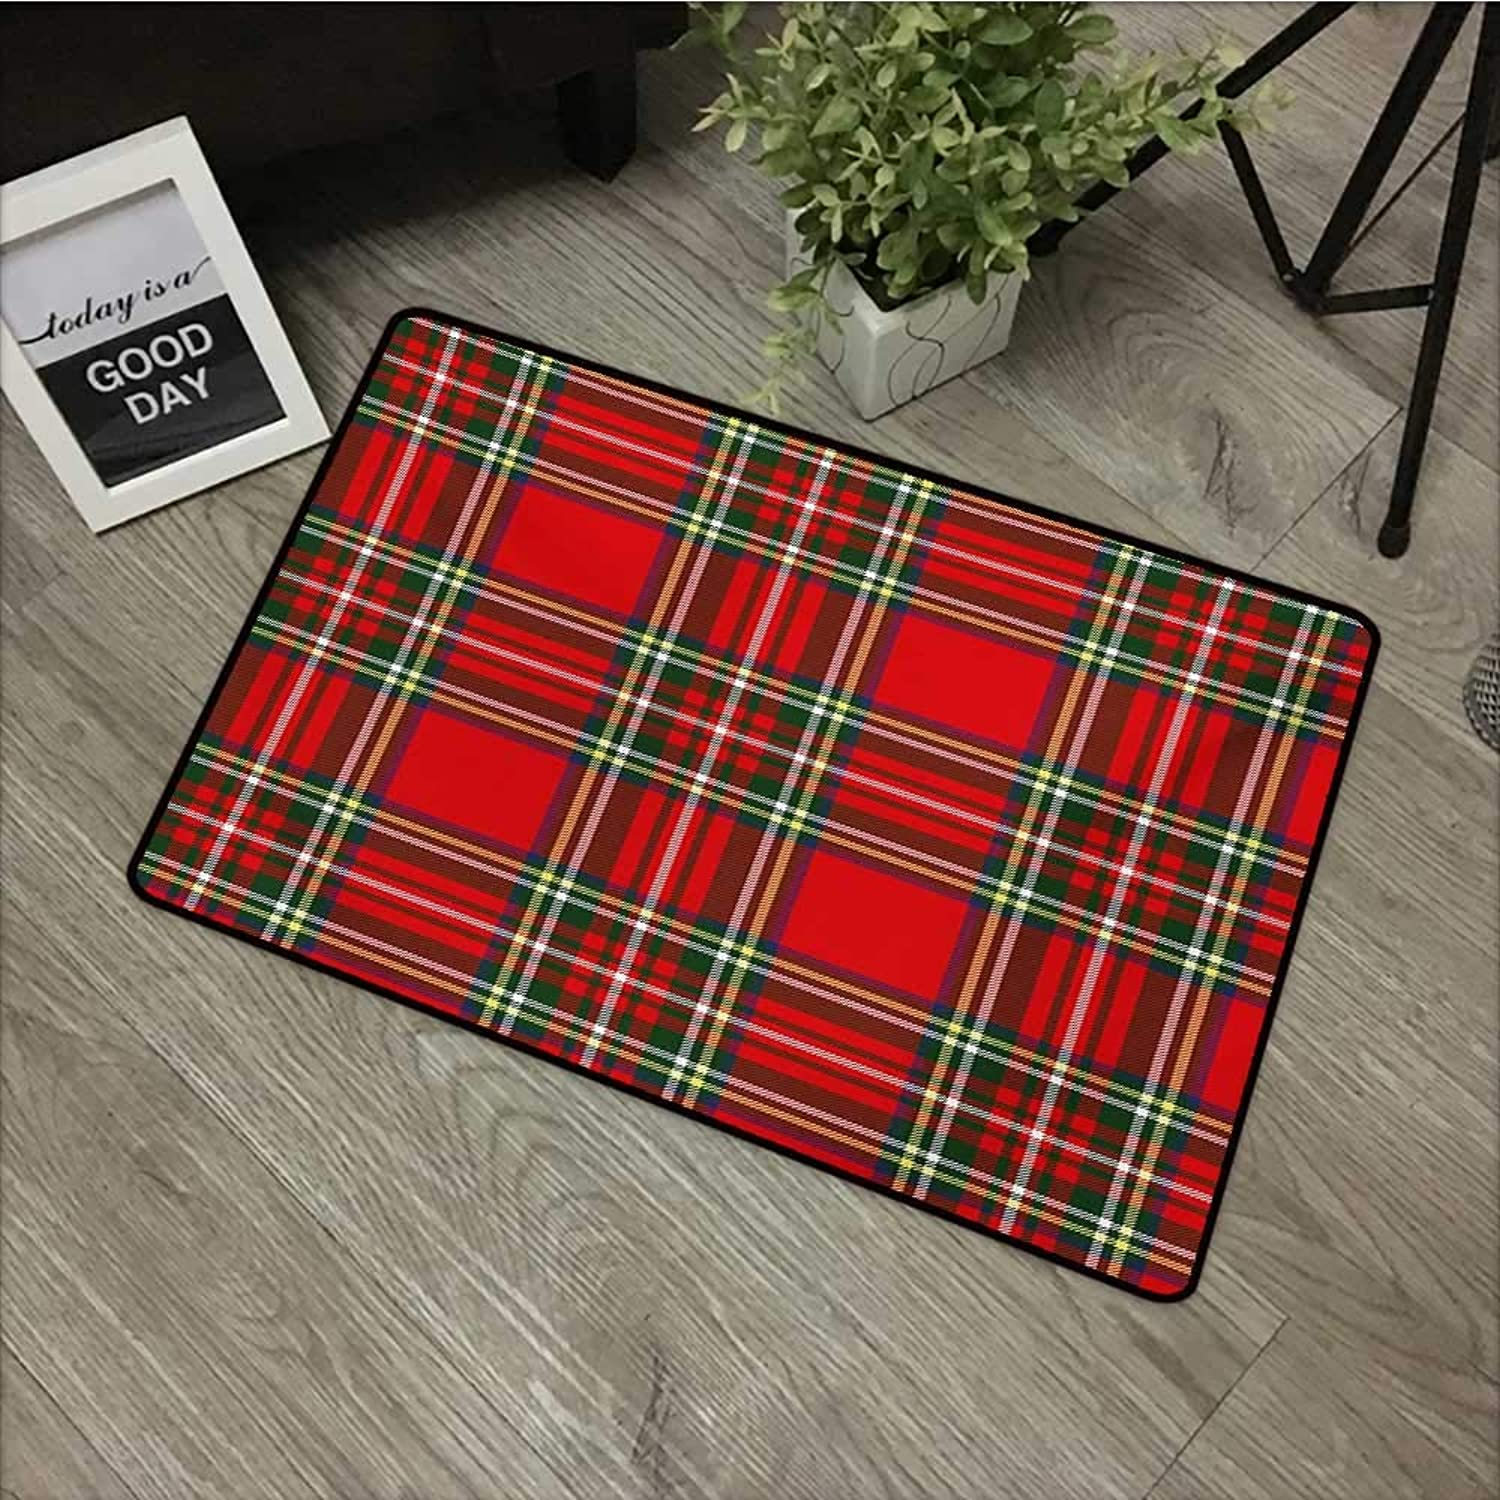 Corridor Door mat W35 x L59 INCH Plaid,European Western Culture Inspired Abstract Irish Pattern Vintage Classical Design,Multicolor Non-Slip, with Non-Slip Backing,Non-Slip Door Mat Carpet